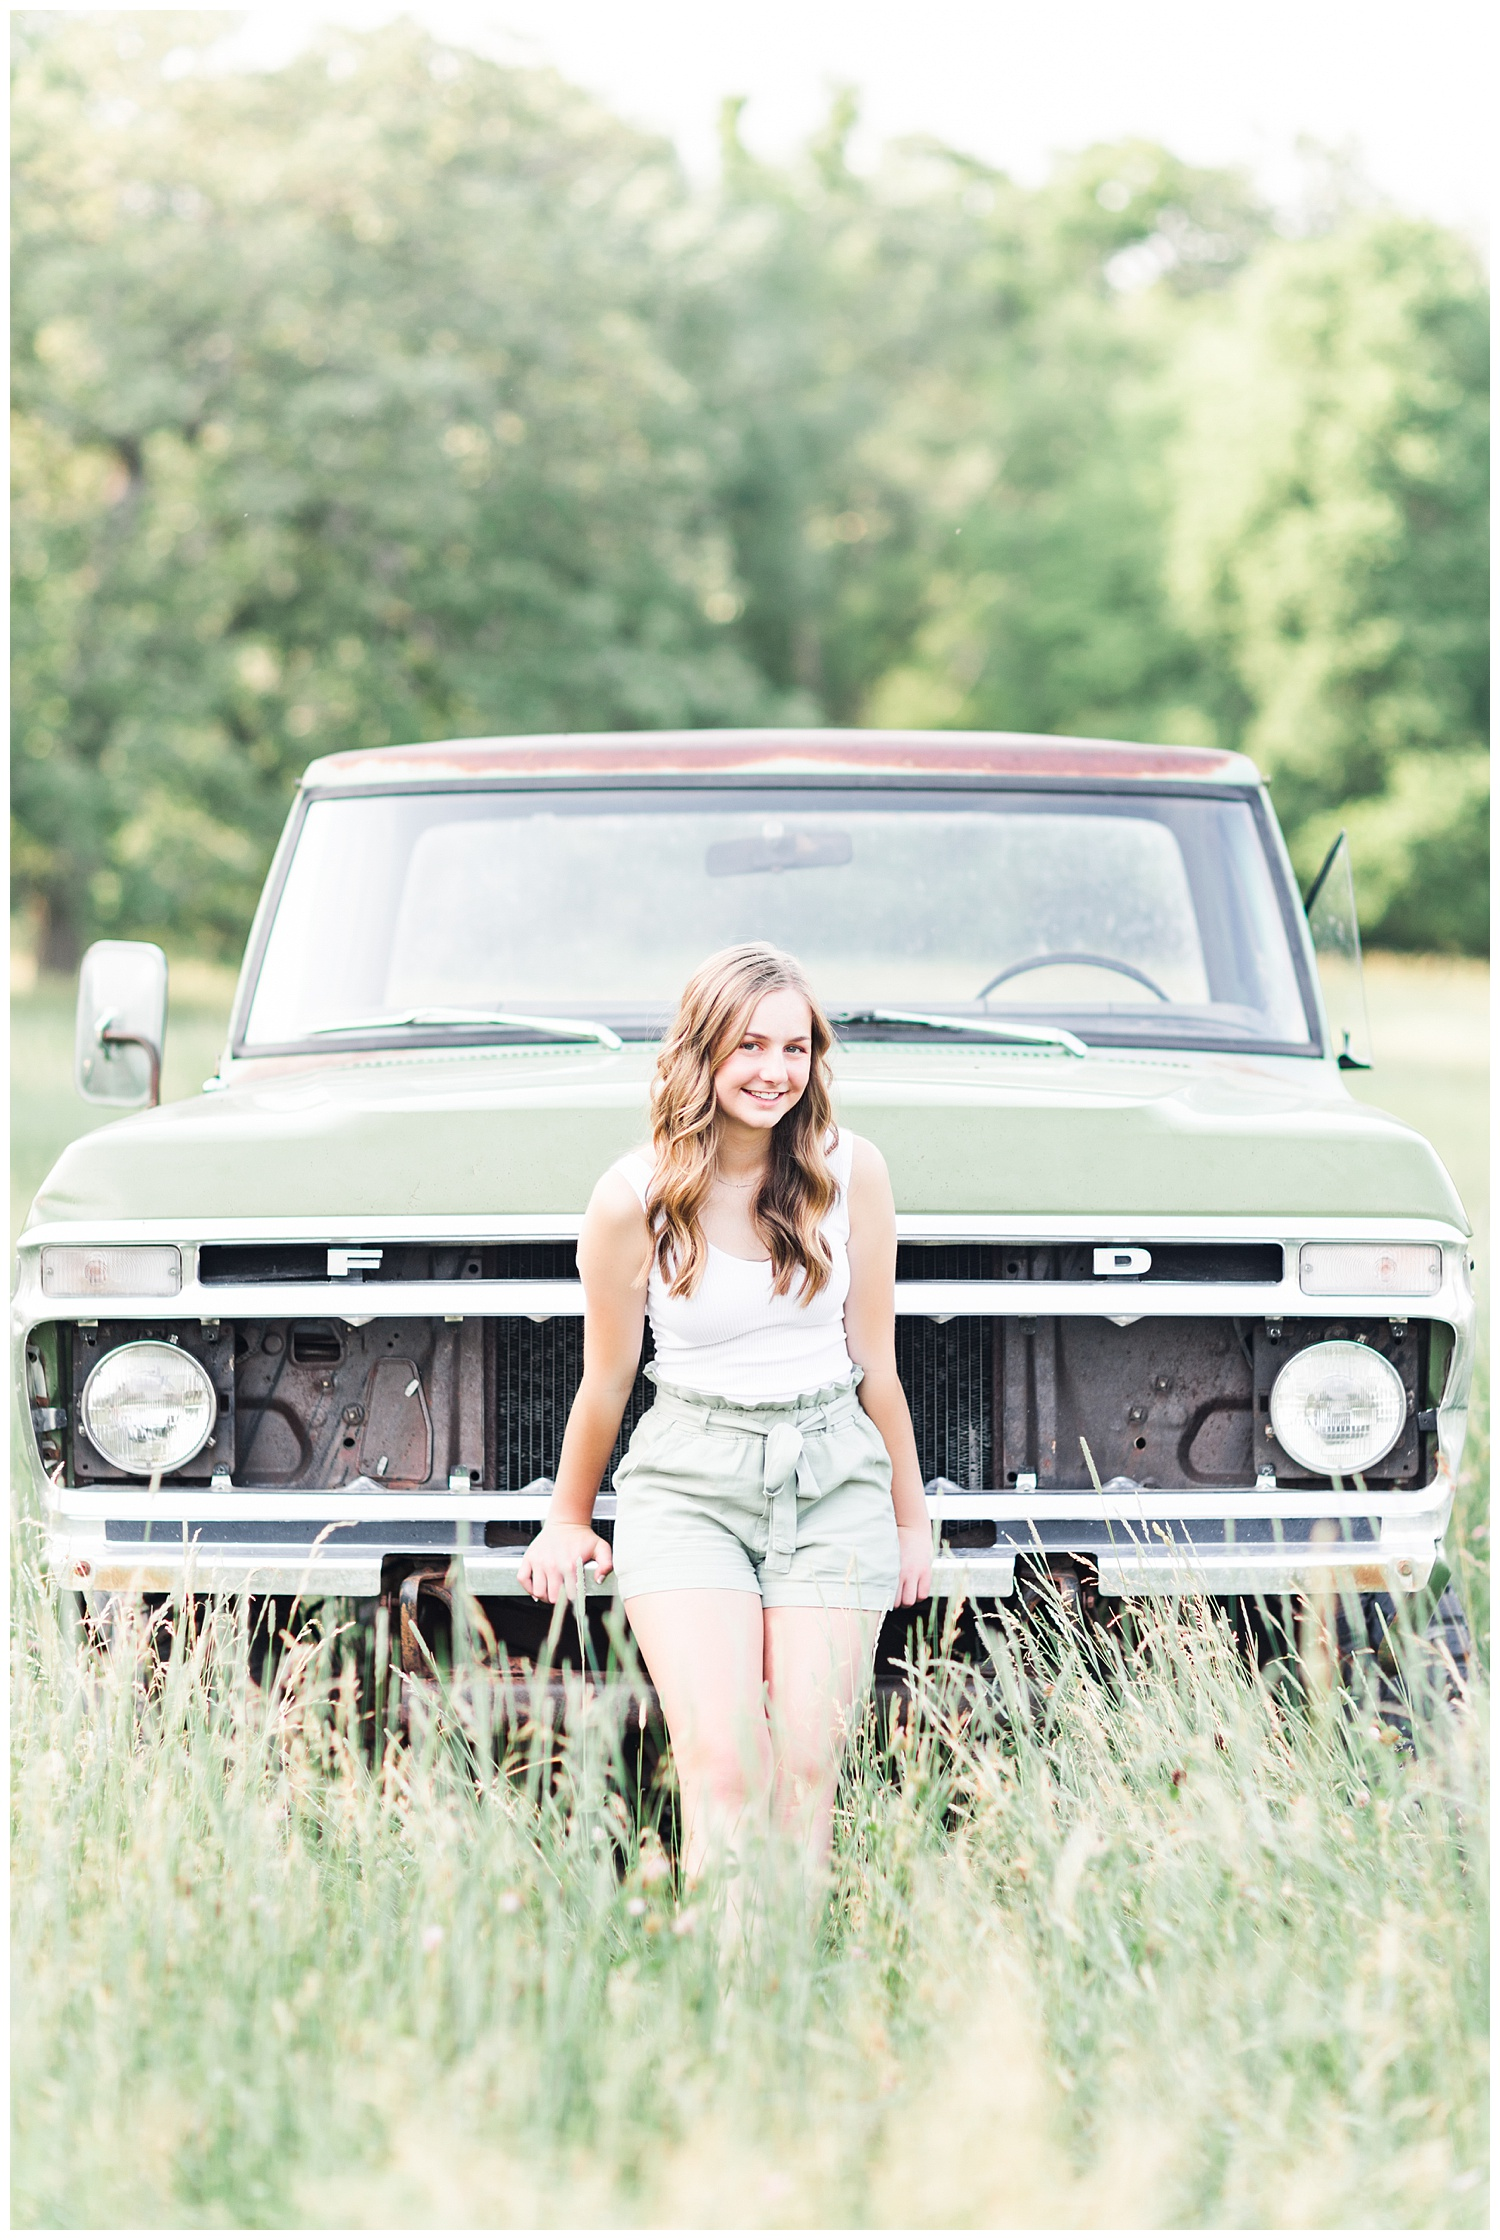 Senior Taylor leaning against an old green Ford truck in a grassy field | CB Studio